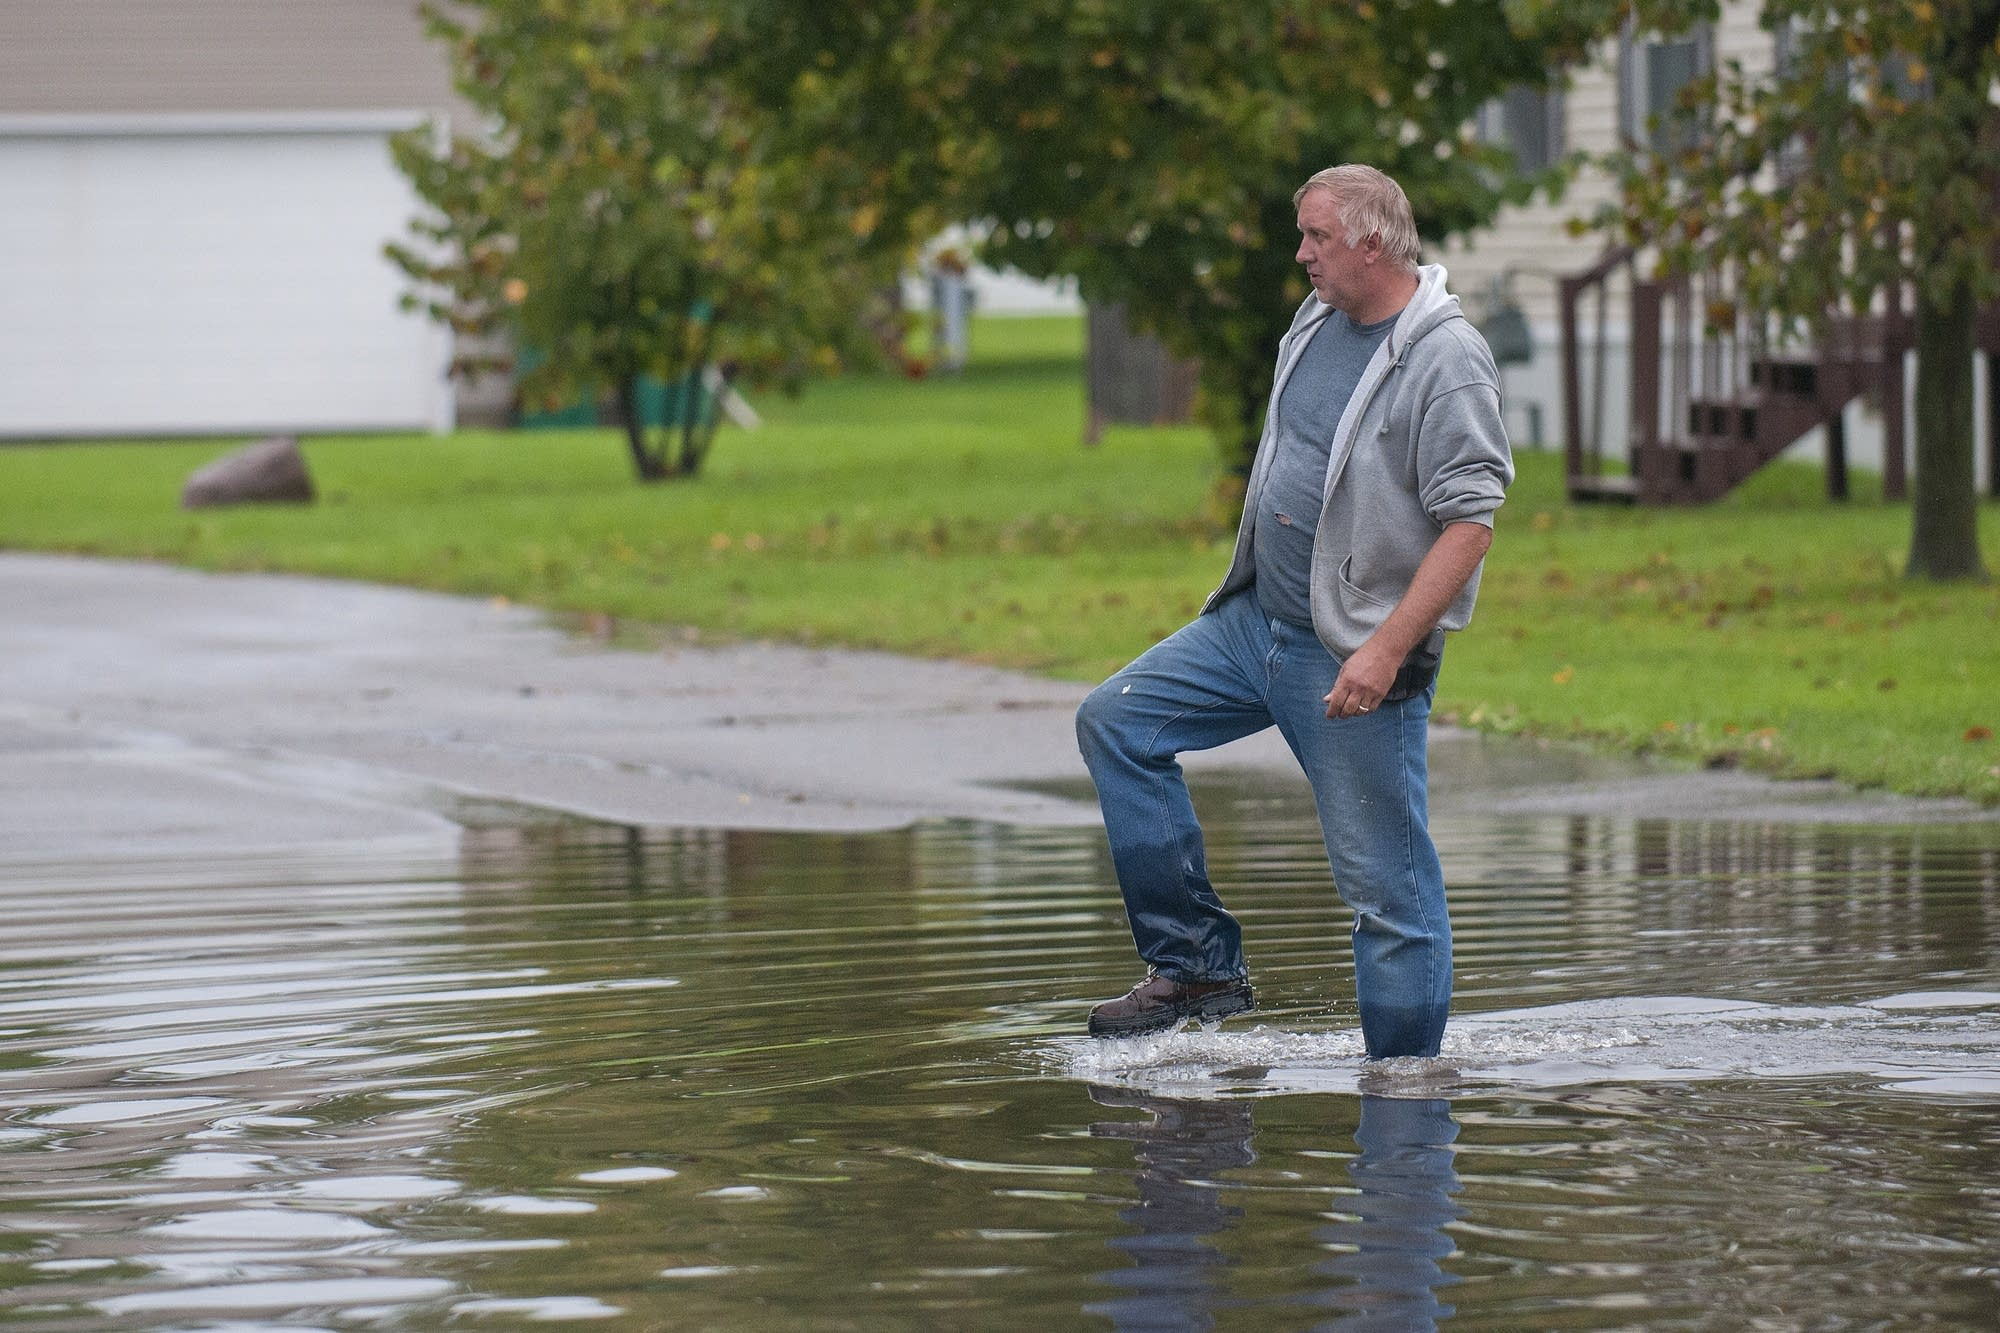 Mike Johnson walks through a flooded street.